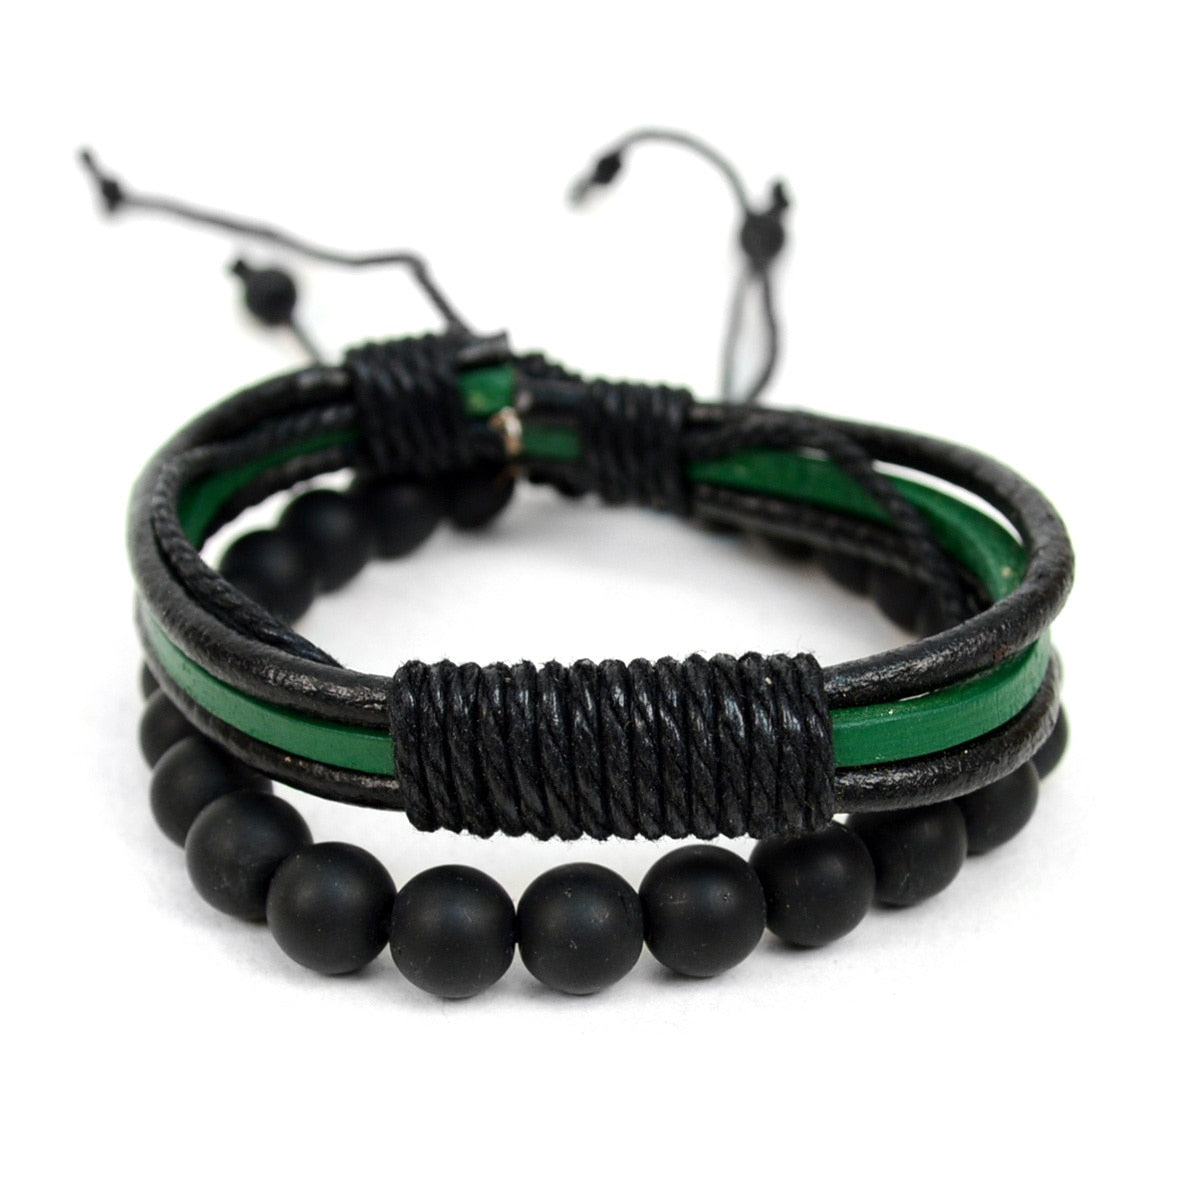 Genuine Leather 2 Piece Bracelet Set for Men